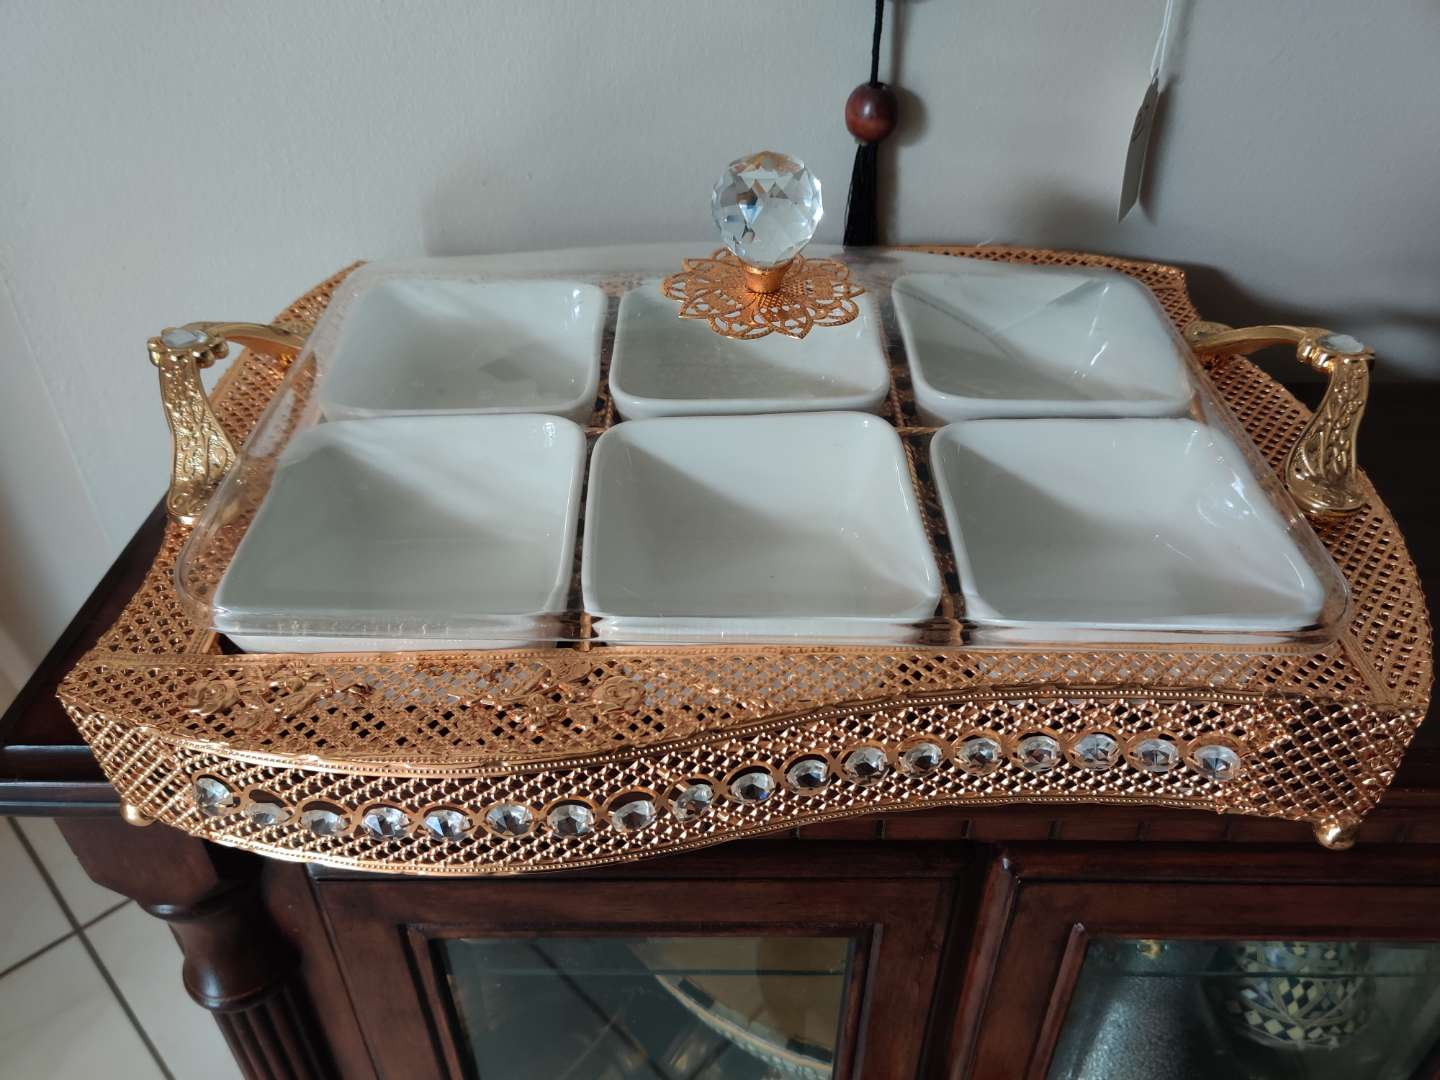 202 elegant serving dish jeweled gold with plastic cover 20 in long Nice condition